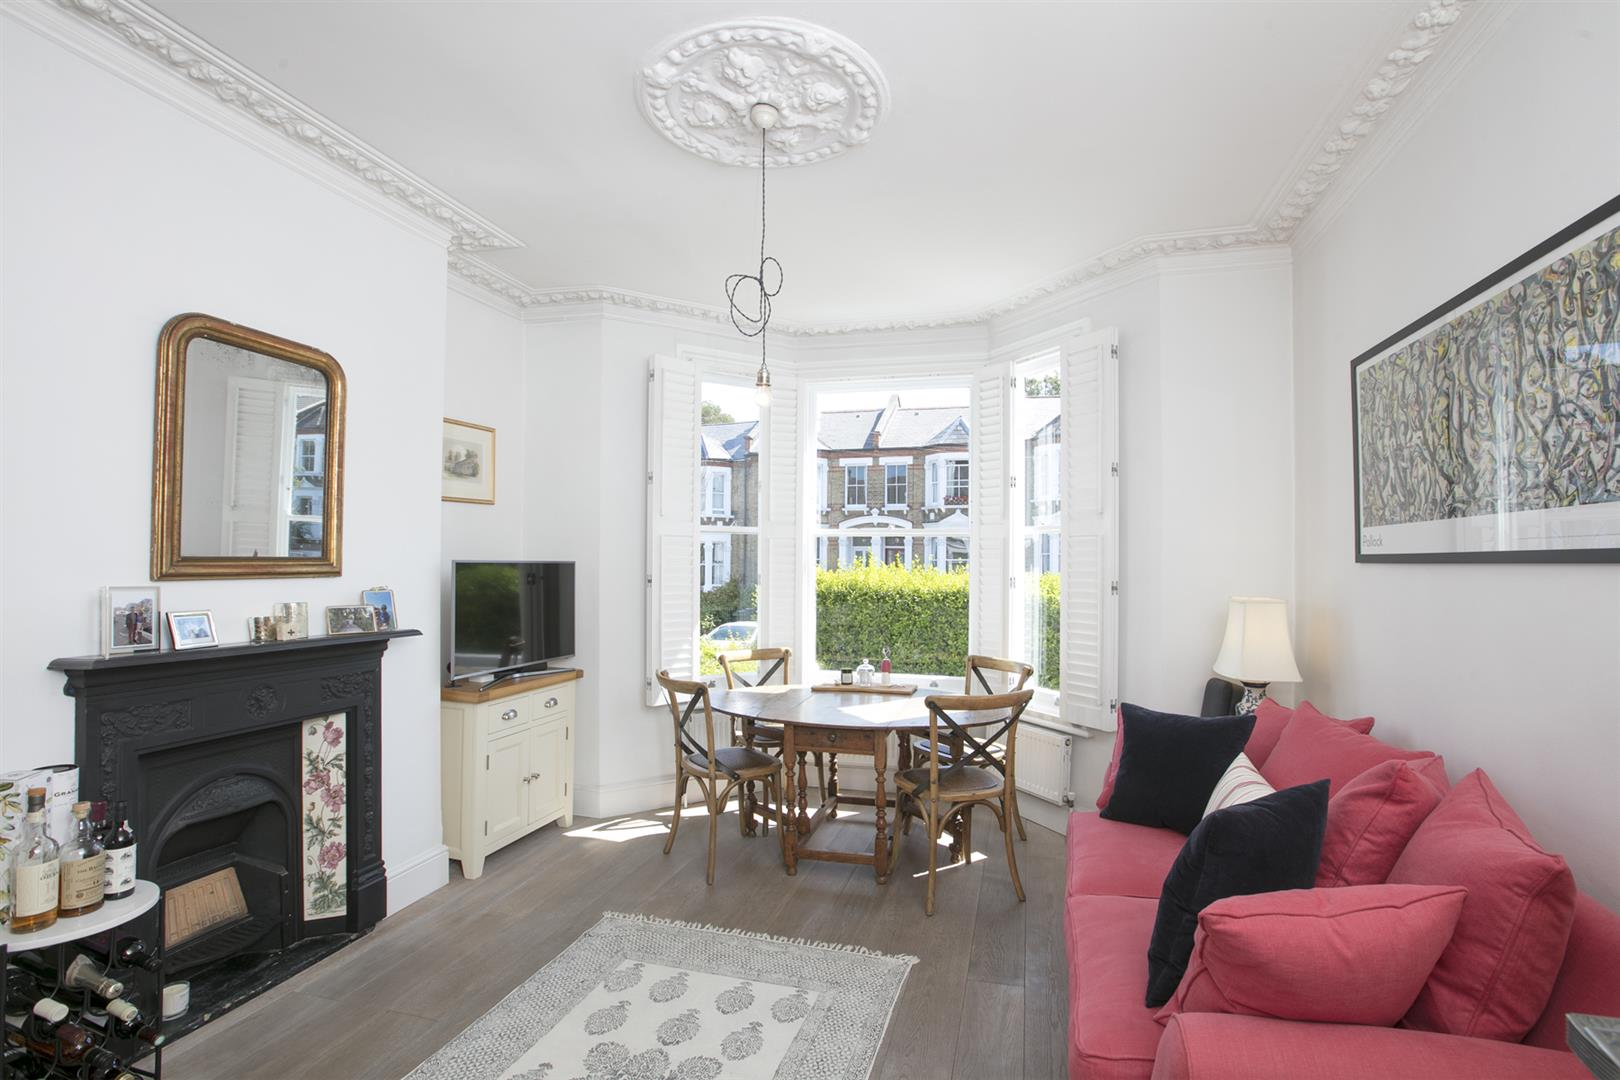 Flat - Conversion Sale Agreed in Waller Road, New Cross, SE14 629 view2